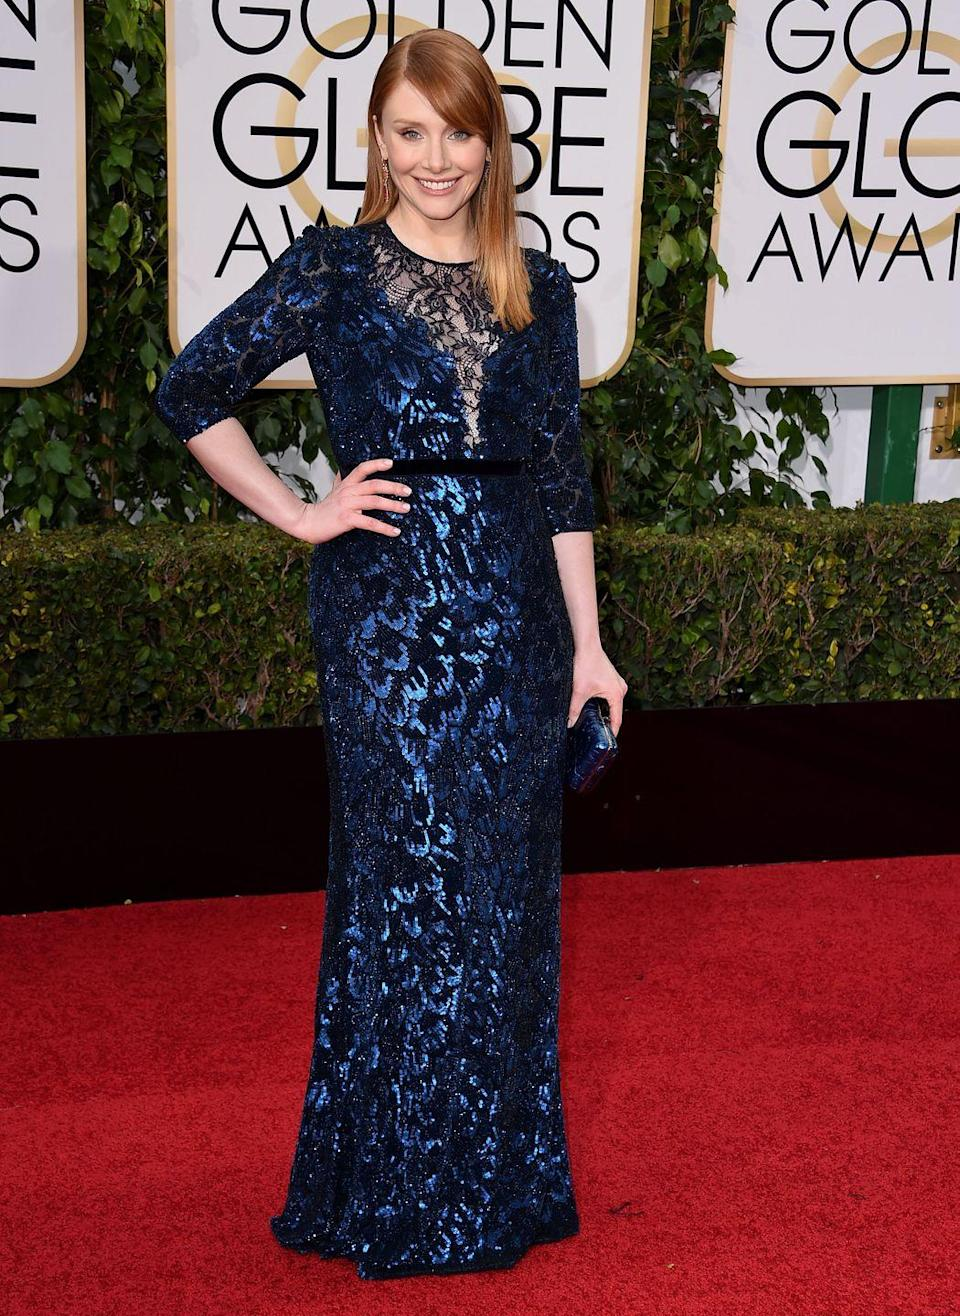 """<p>The <em>Jurassic World</em> star revealed that she had to buy her own gown for the 2016 Golden Globes as there weren't enough designers who could lend her one in her size.</p><p>""""I like having lots of options for a size 6 [a UK size 10] as opposed to maybe one option so I always go to department stores,"""" the actress told<em> <a href=""""http://www.eonline.com/uk"""" rel=""""nofollow noopener"""" target=""""_blank"""" data-ylk=""""slk:E!"""" class=""""link rapid-noclick-resp"""">E!</a></em>. <br></p><p>She bought her metallic blue Jenny Packham gown from Neiman Marcus. </p>"""